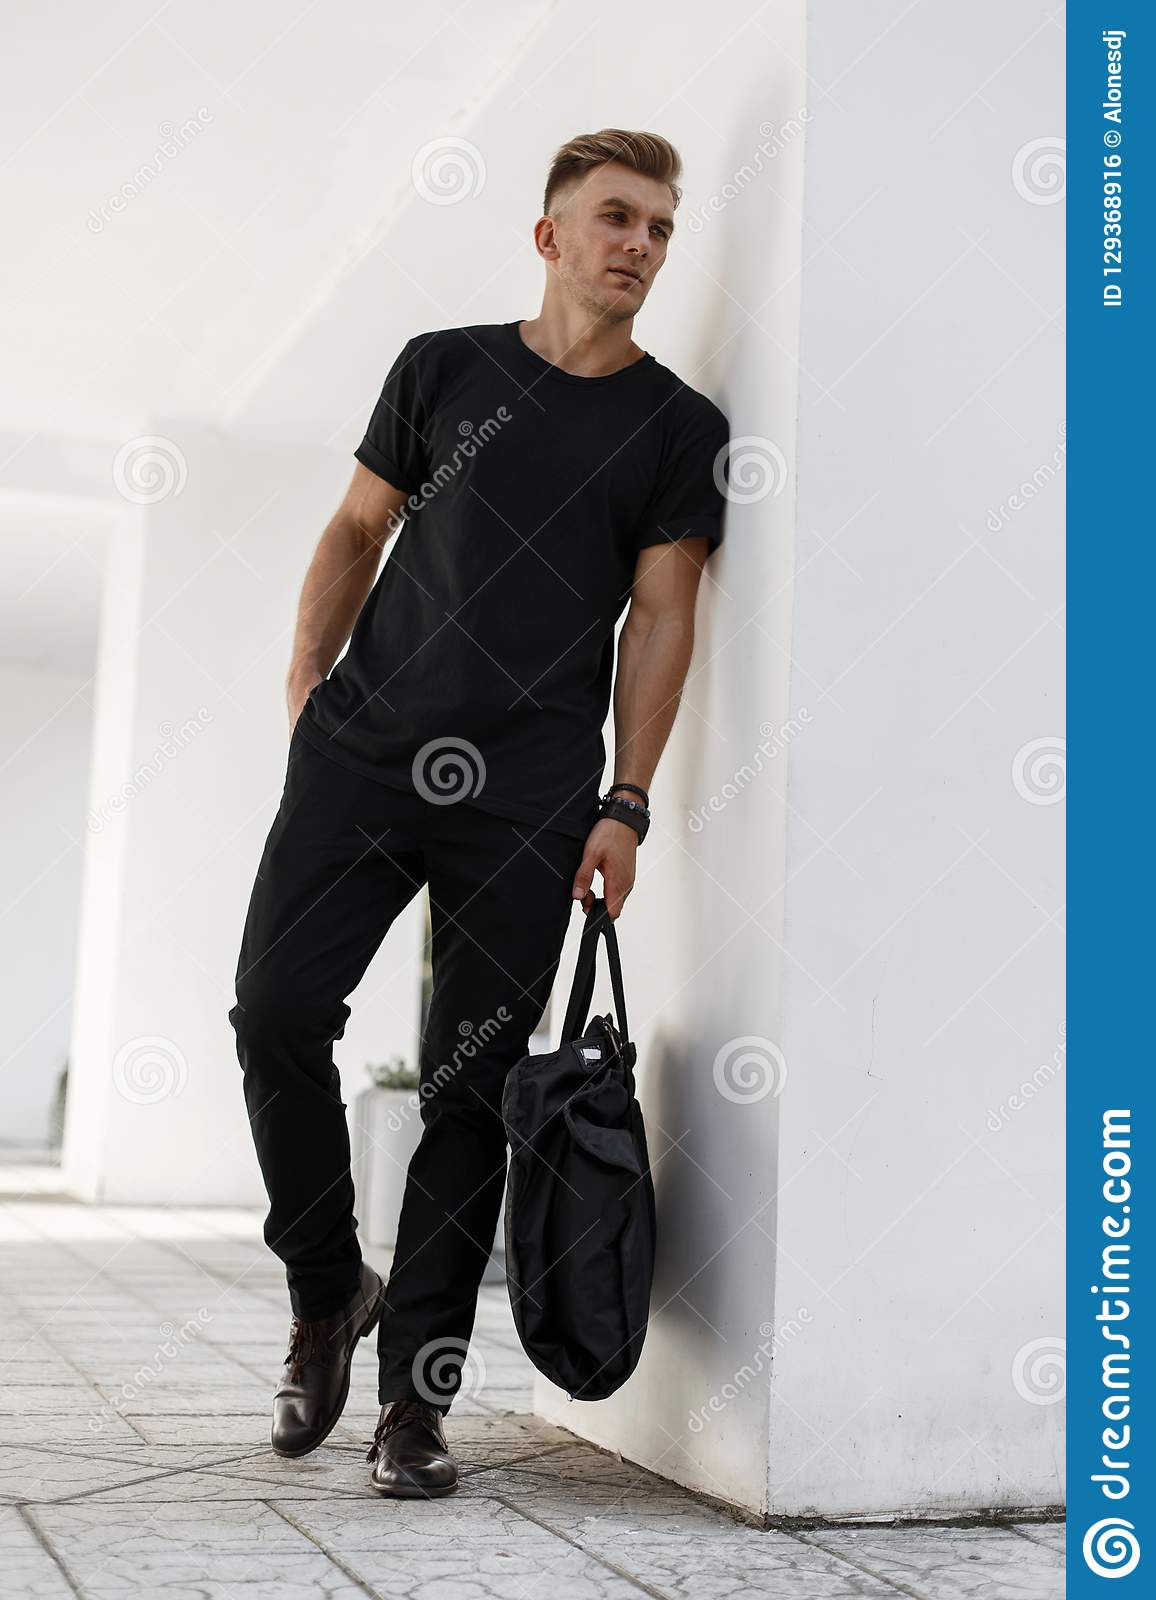 Fashionable Handsome Young Man In Black Stylish Clothes With